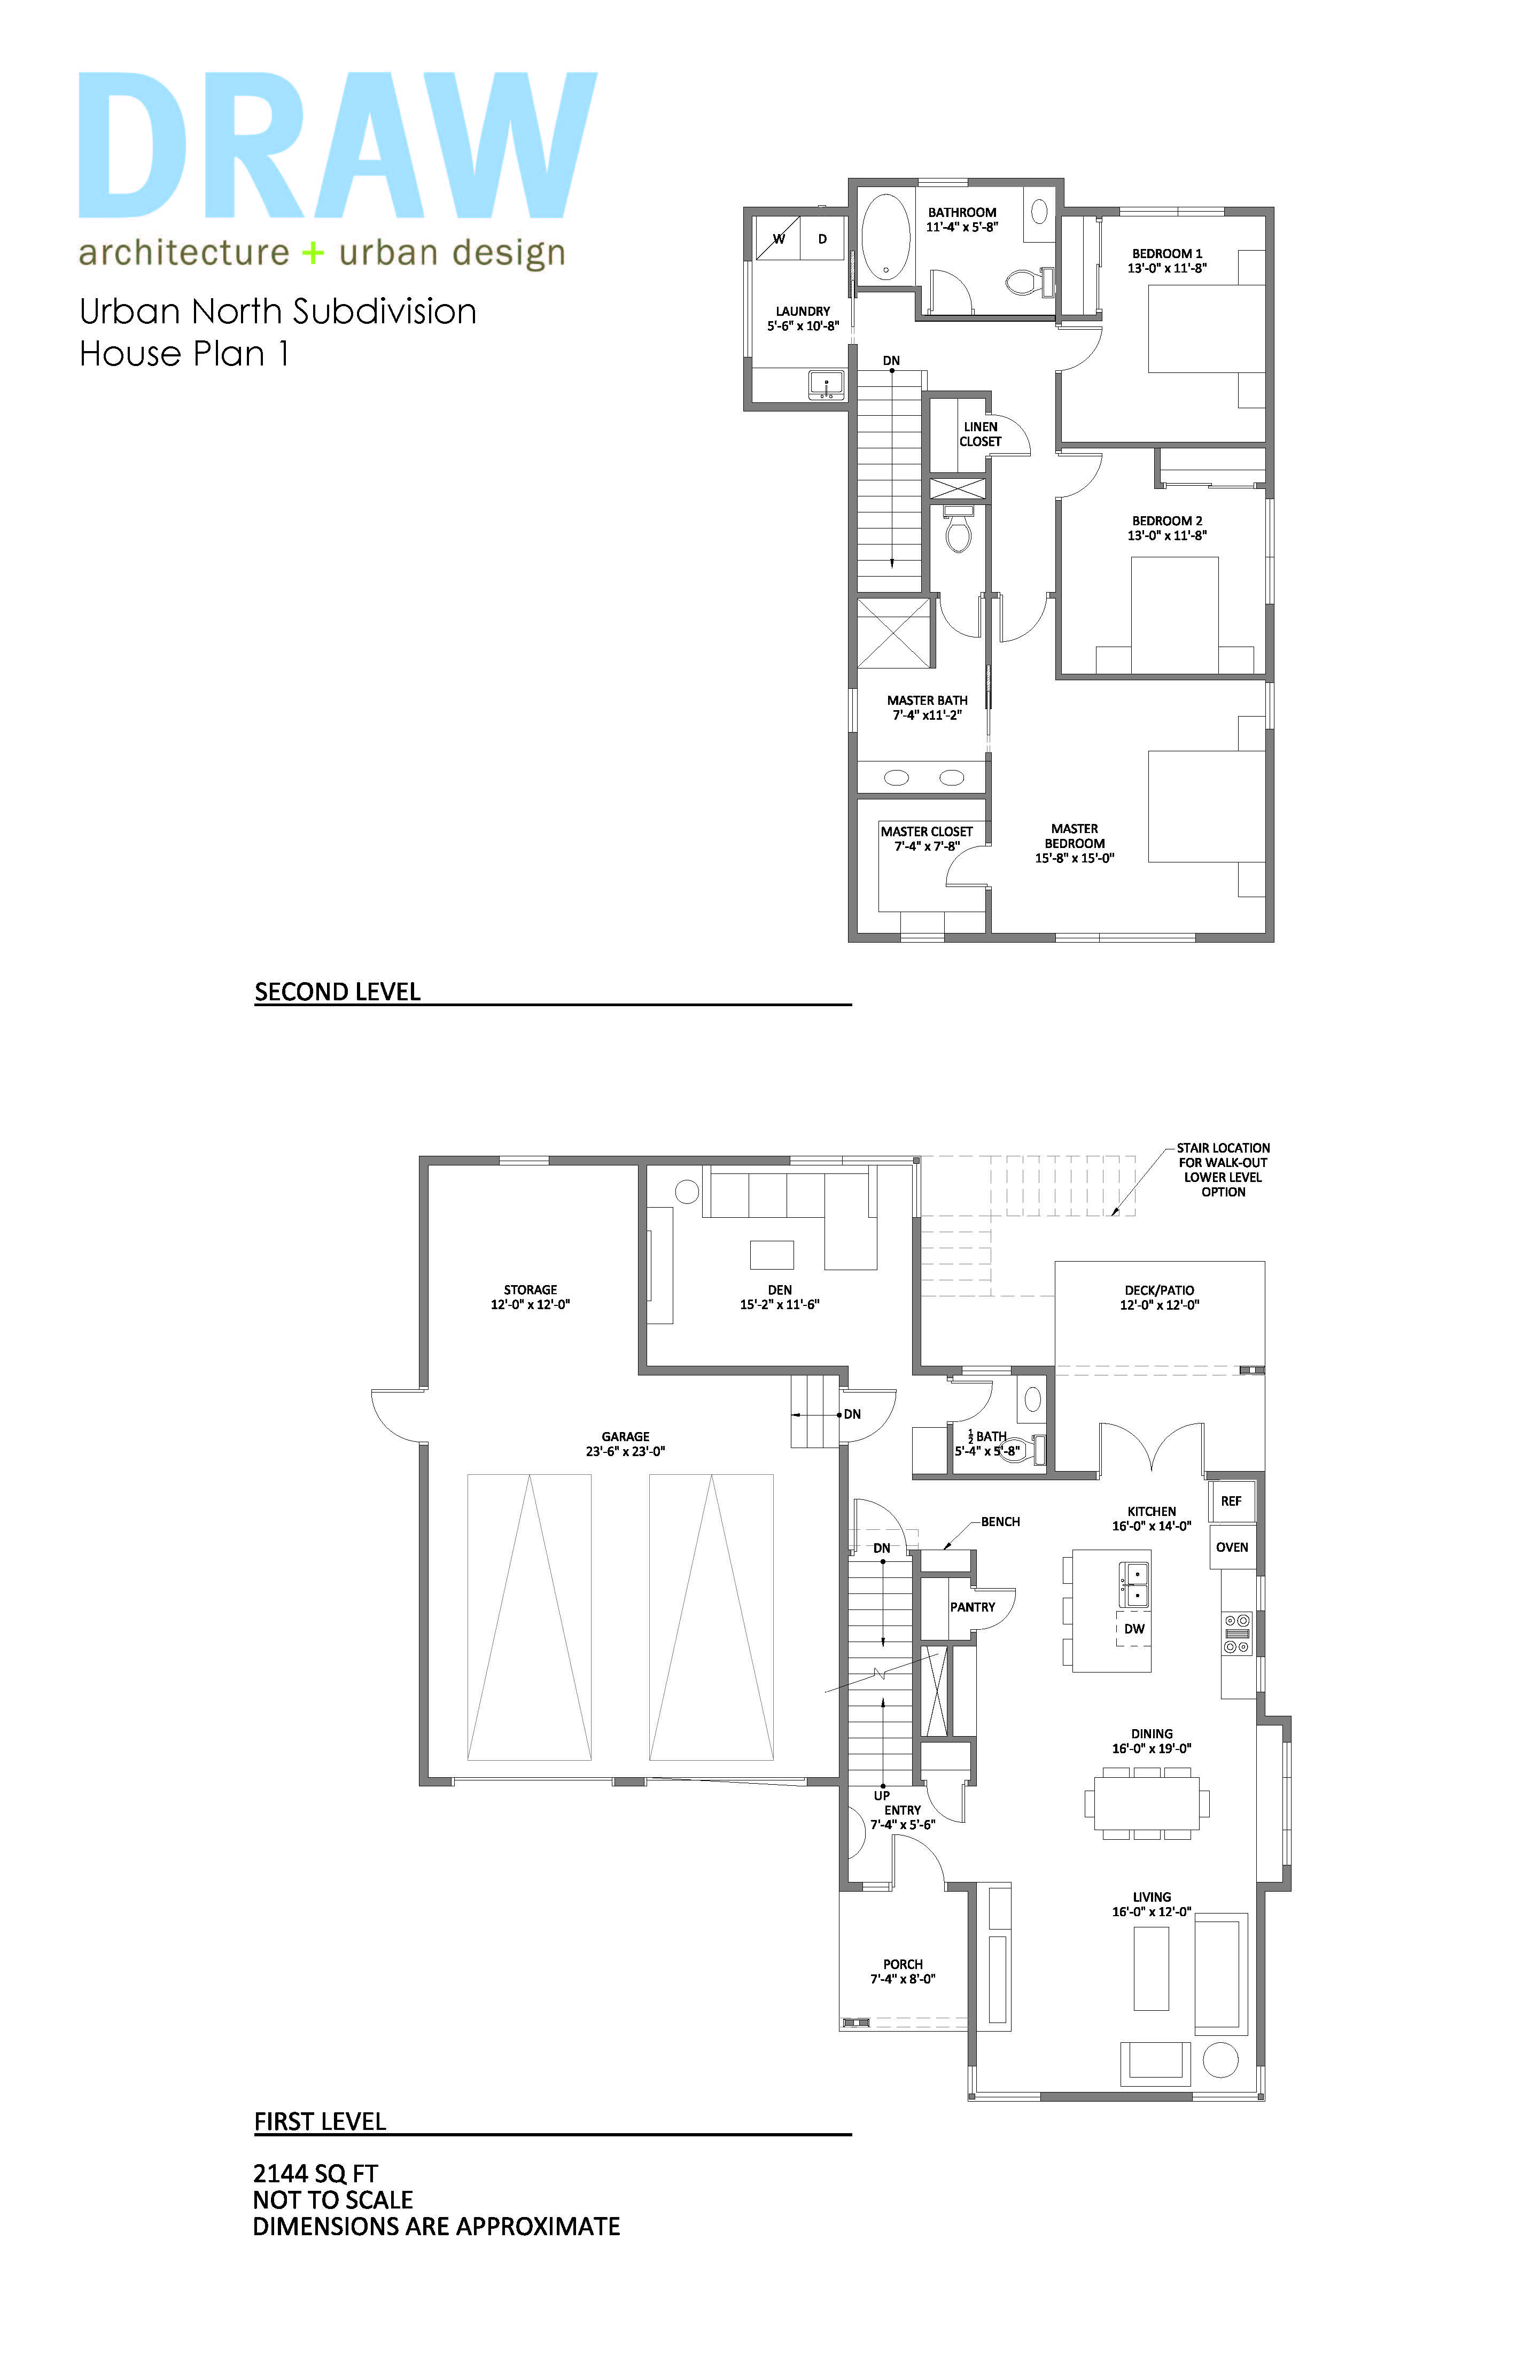 House plan 1 urban north kcmo 39 s new modern subdivision for New urbanism house plans